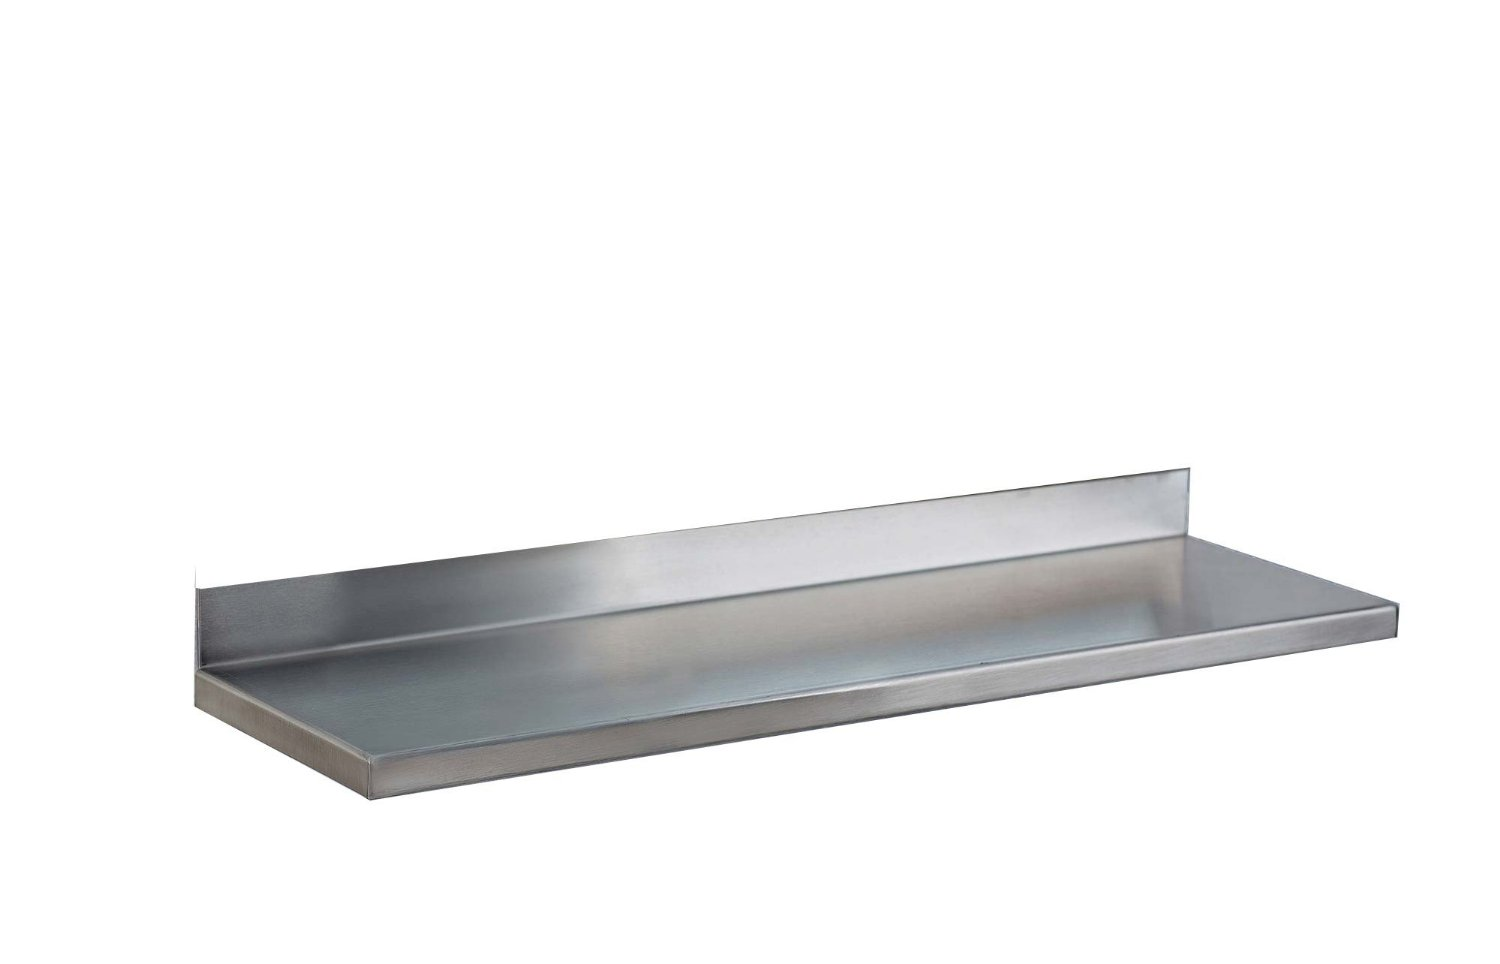 84-inch x 6-inch, Integral shelf, satin finish